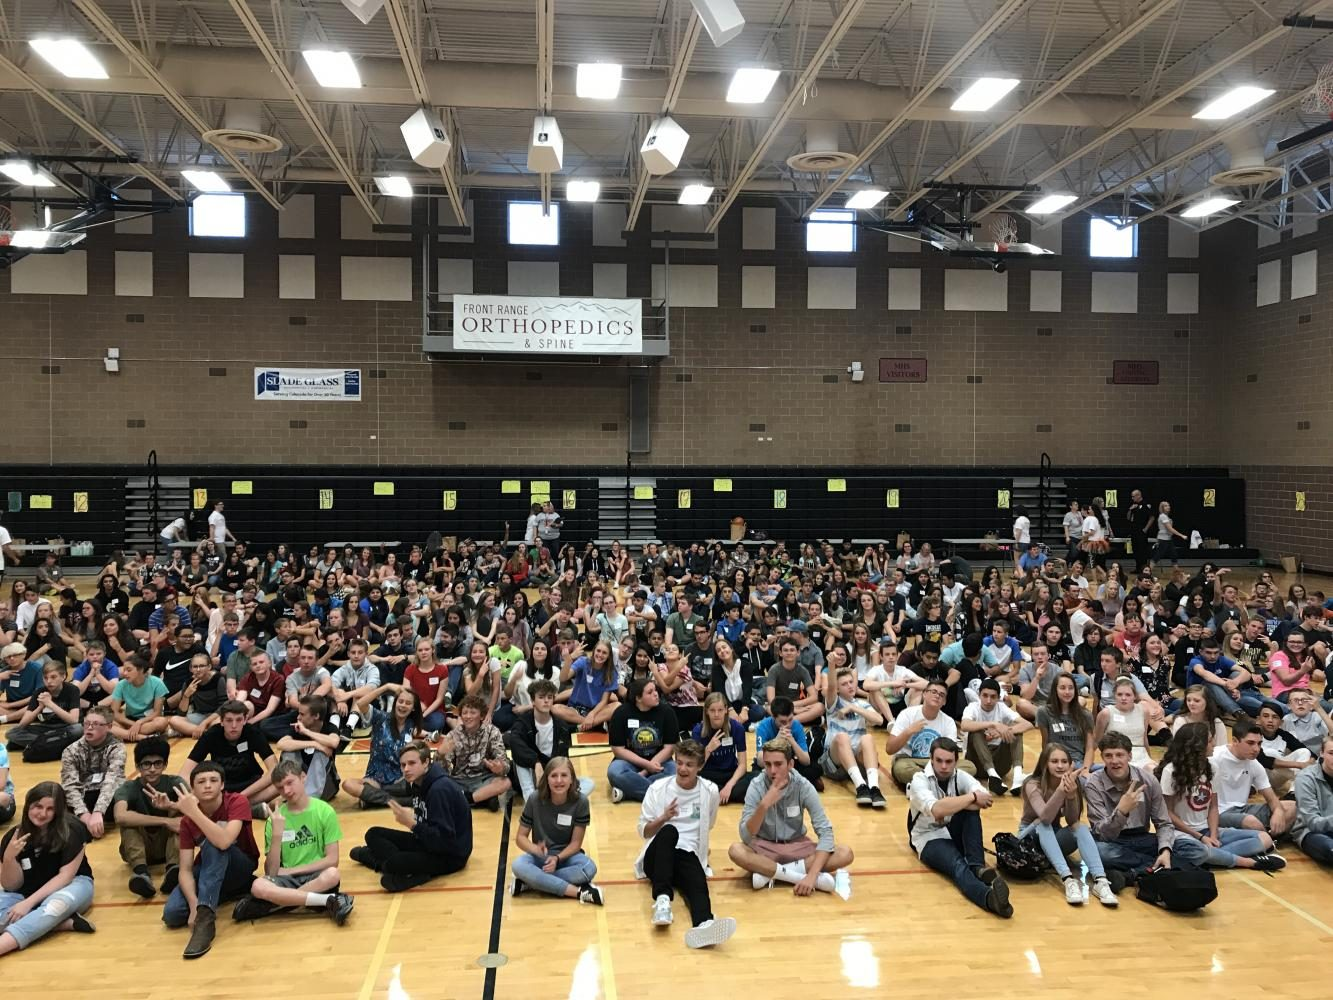 Class of 2021 poses in the main gym on their first day of school, as Posse leaders prepare them for their high school journey.